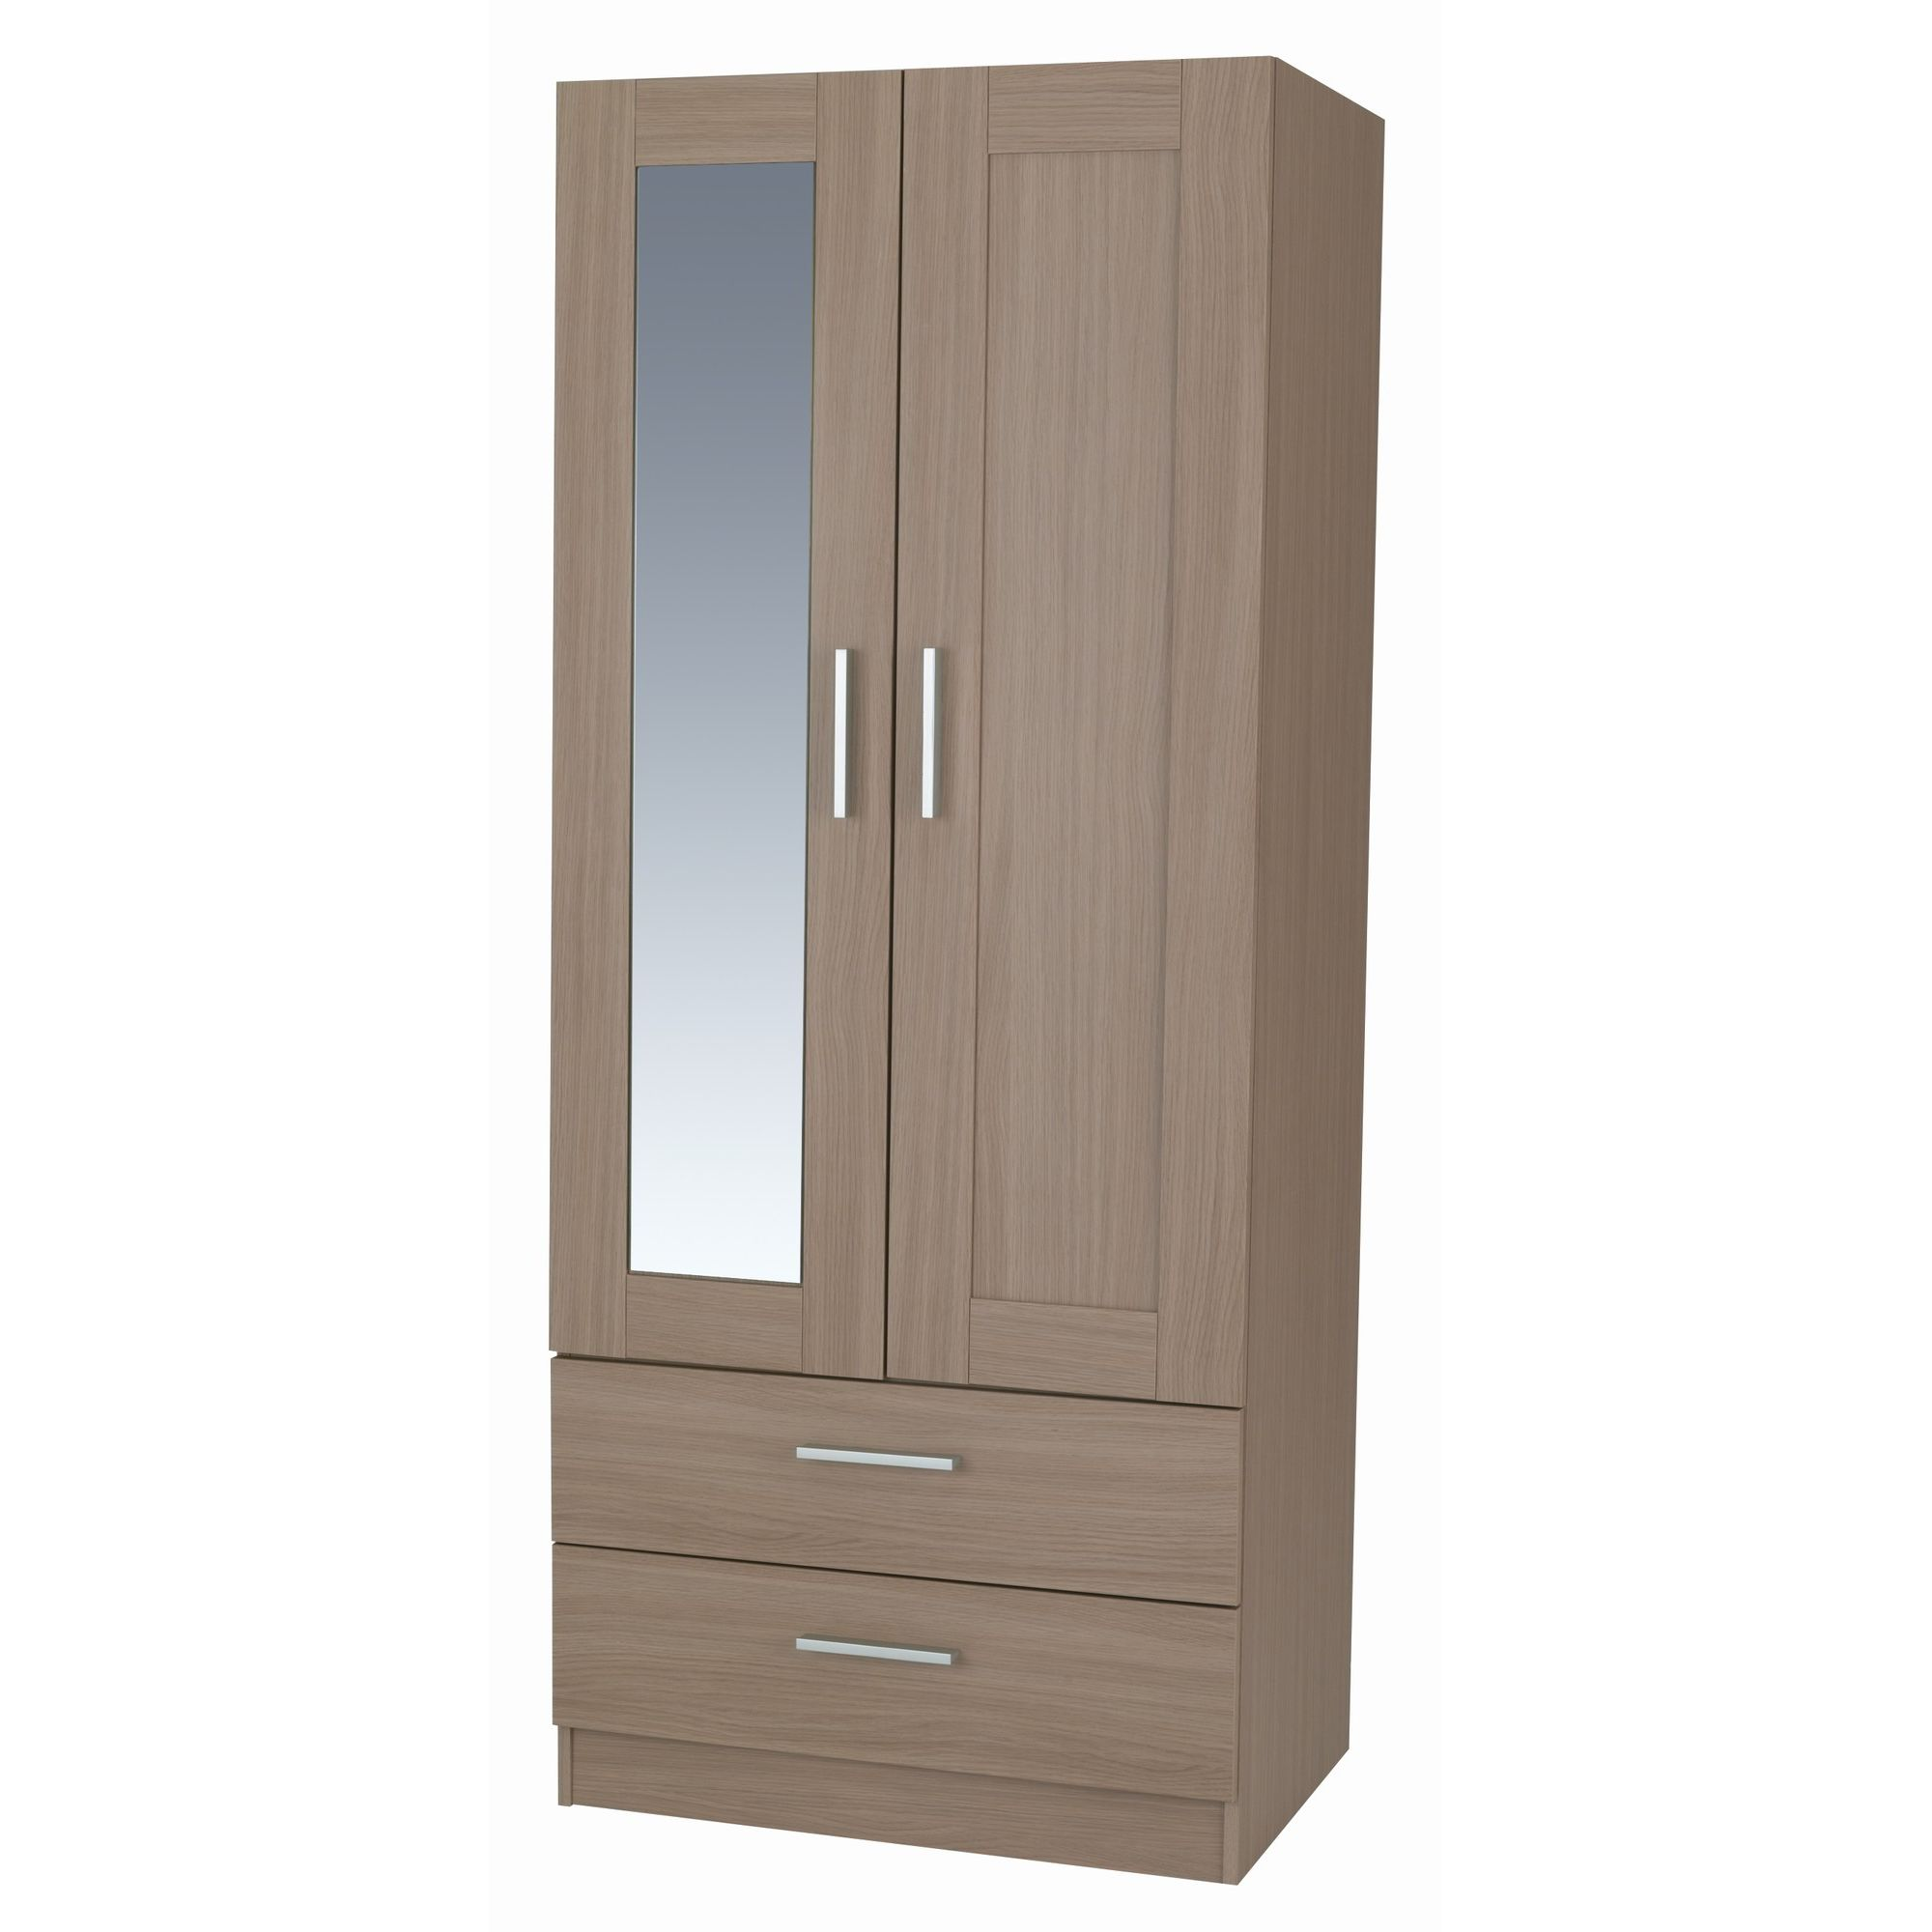 Alto Furniture Visualise Shaker Combi Two Drawer Wardrobe in Veradi Oak at Tesco Direct